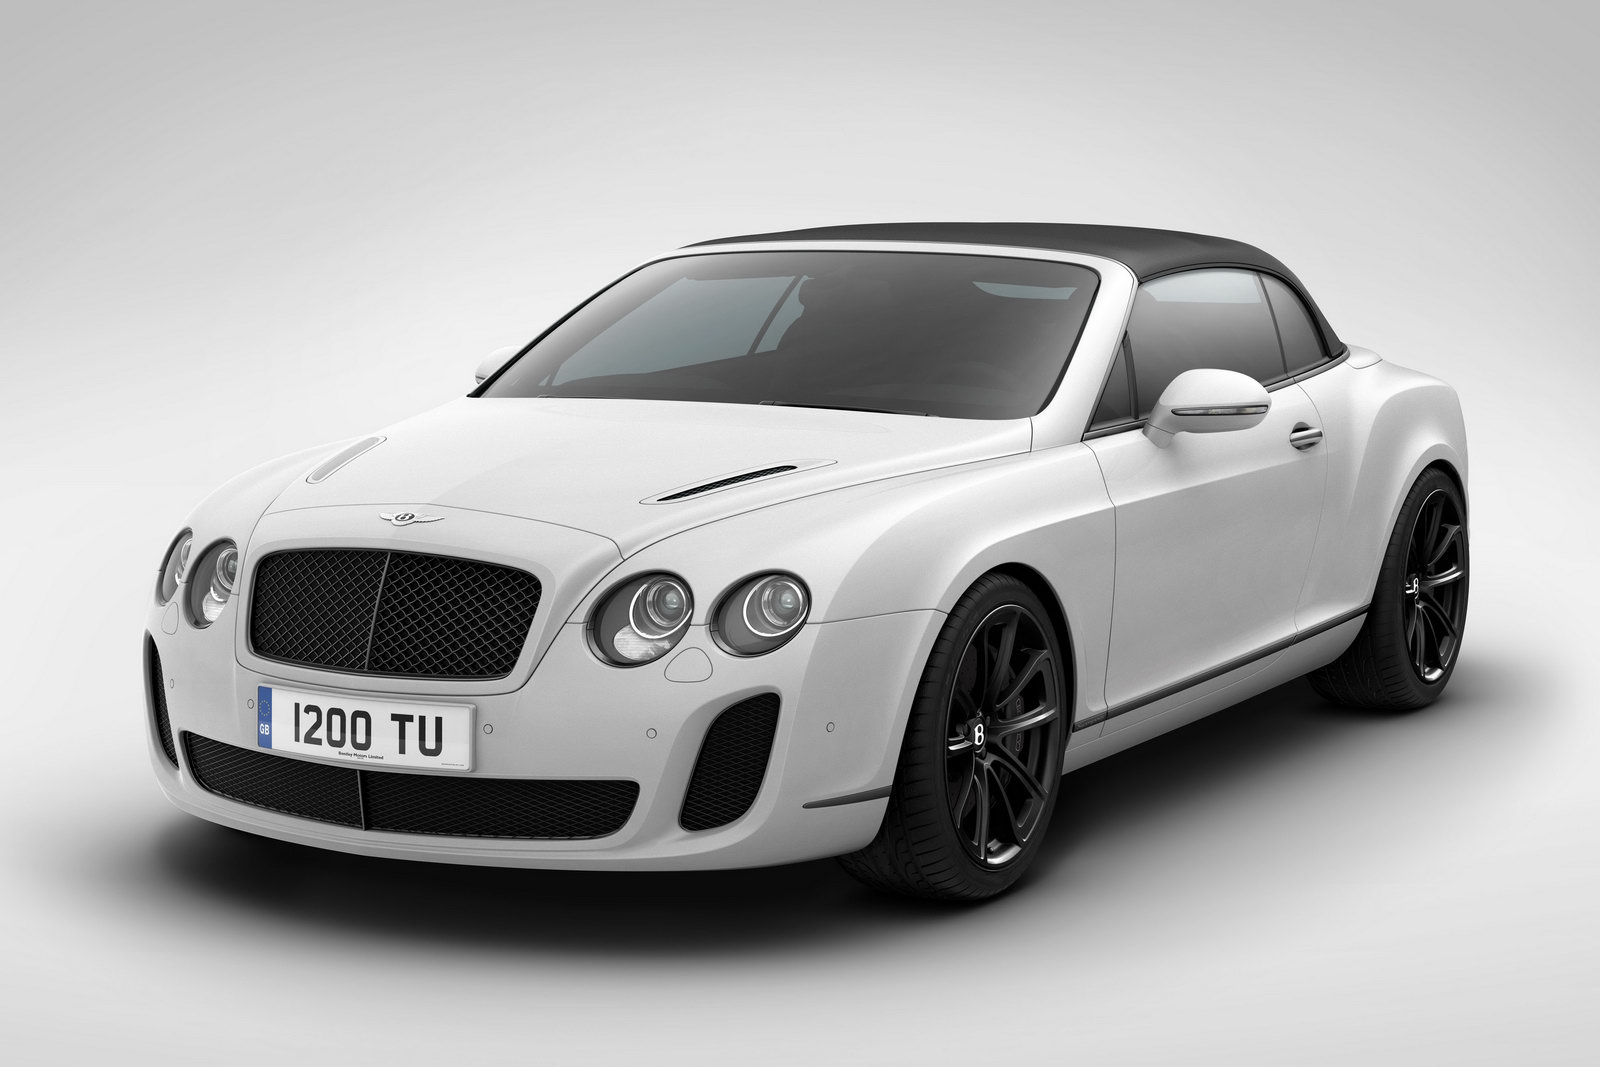 Bnetley Continental SE 10 Bentley Supersports Special Edition Convertible celebrating Ice Speed Record